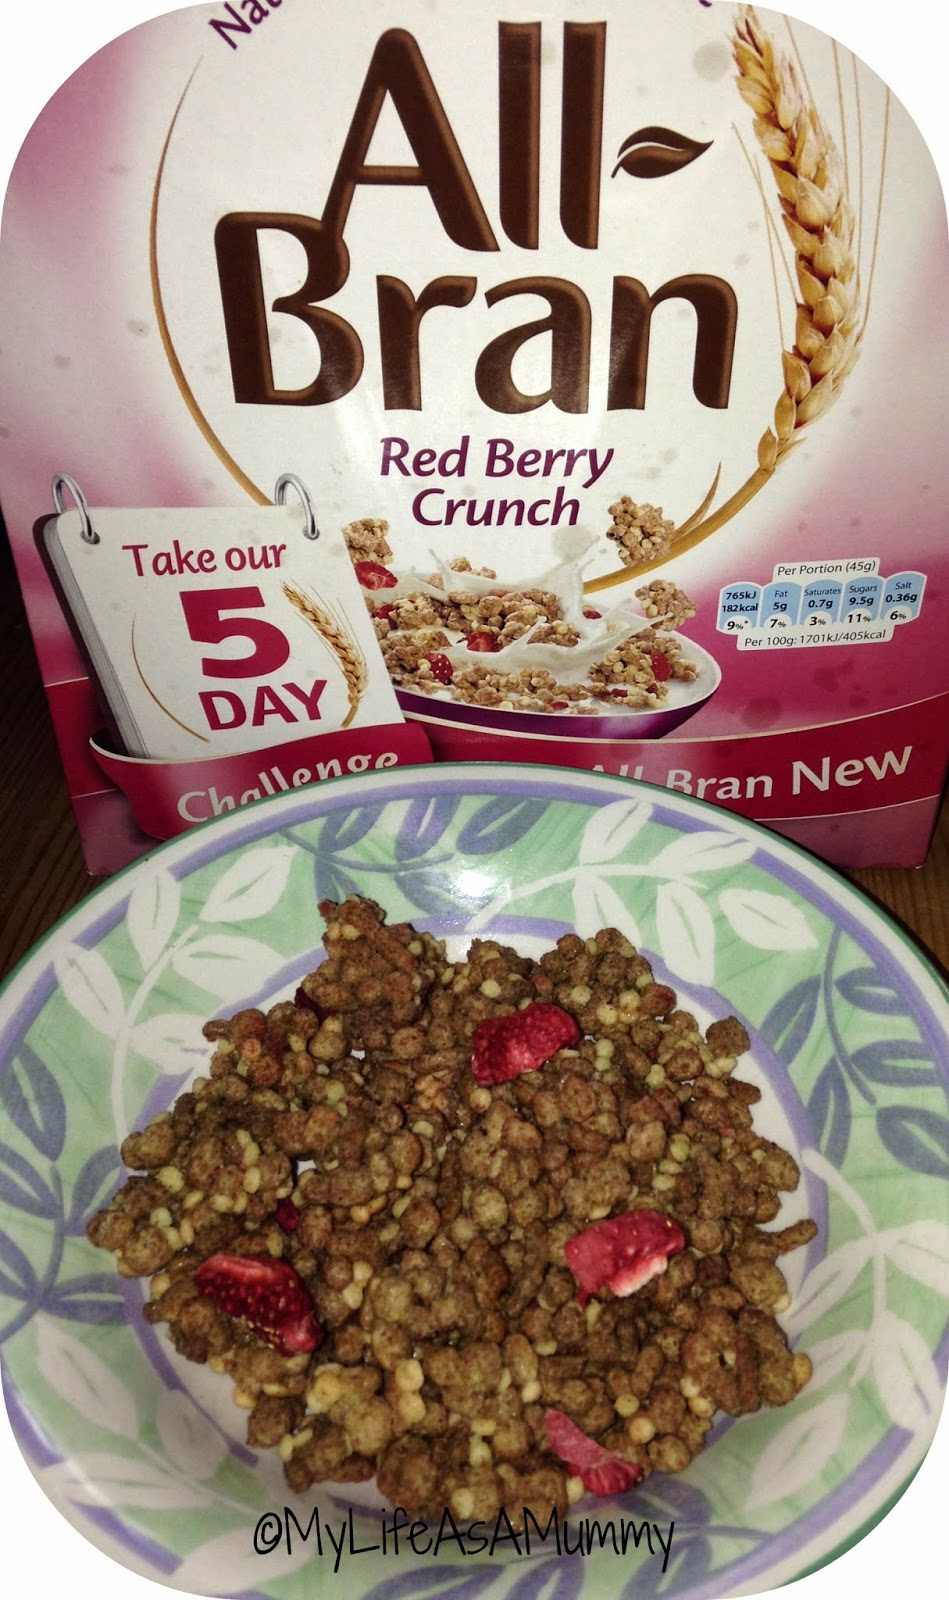 Red Berry Crunch